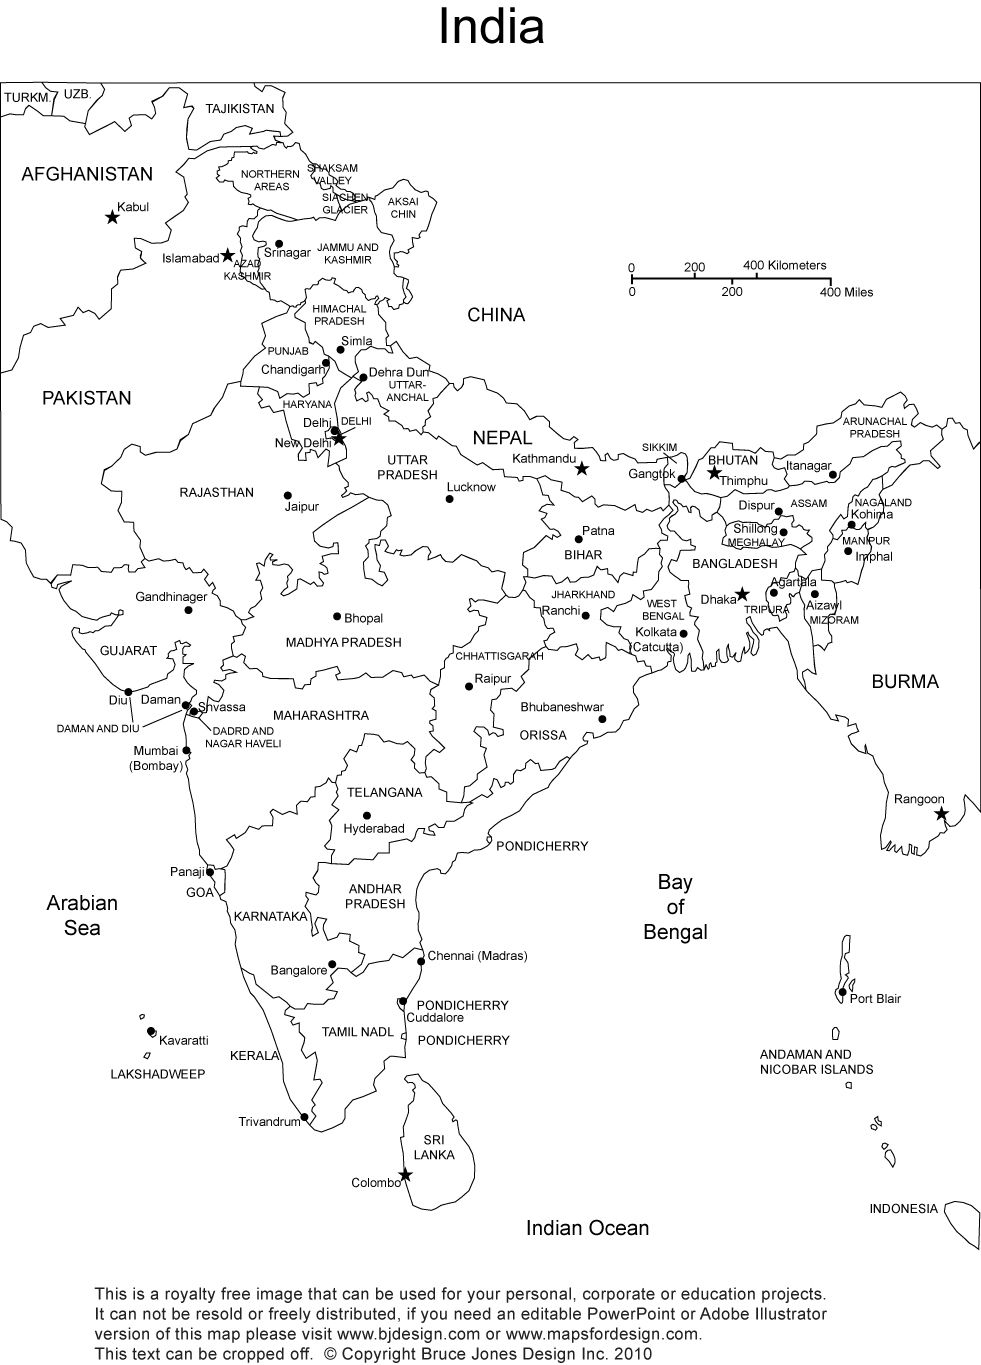 India Printable Blank Map New Delhi Royalty Free Holi - World map black and white printable with countries